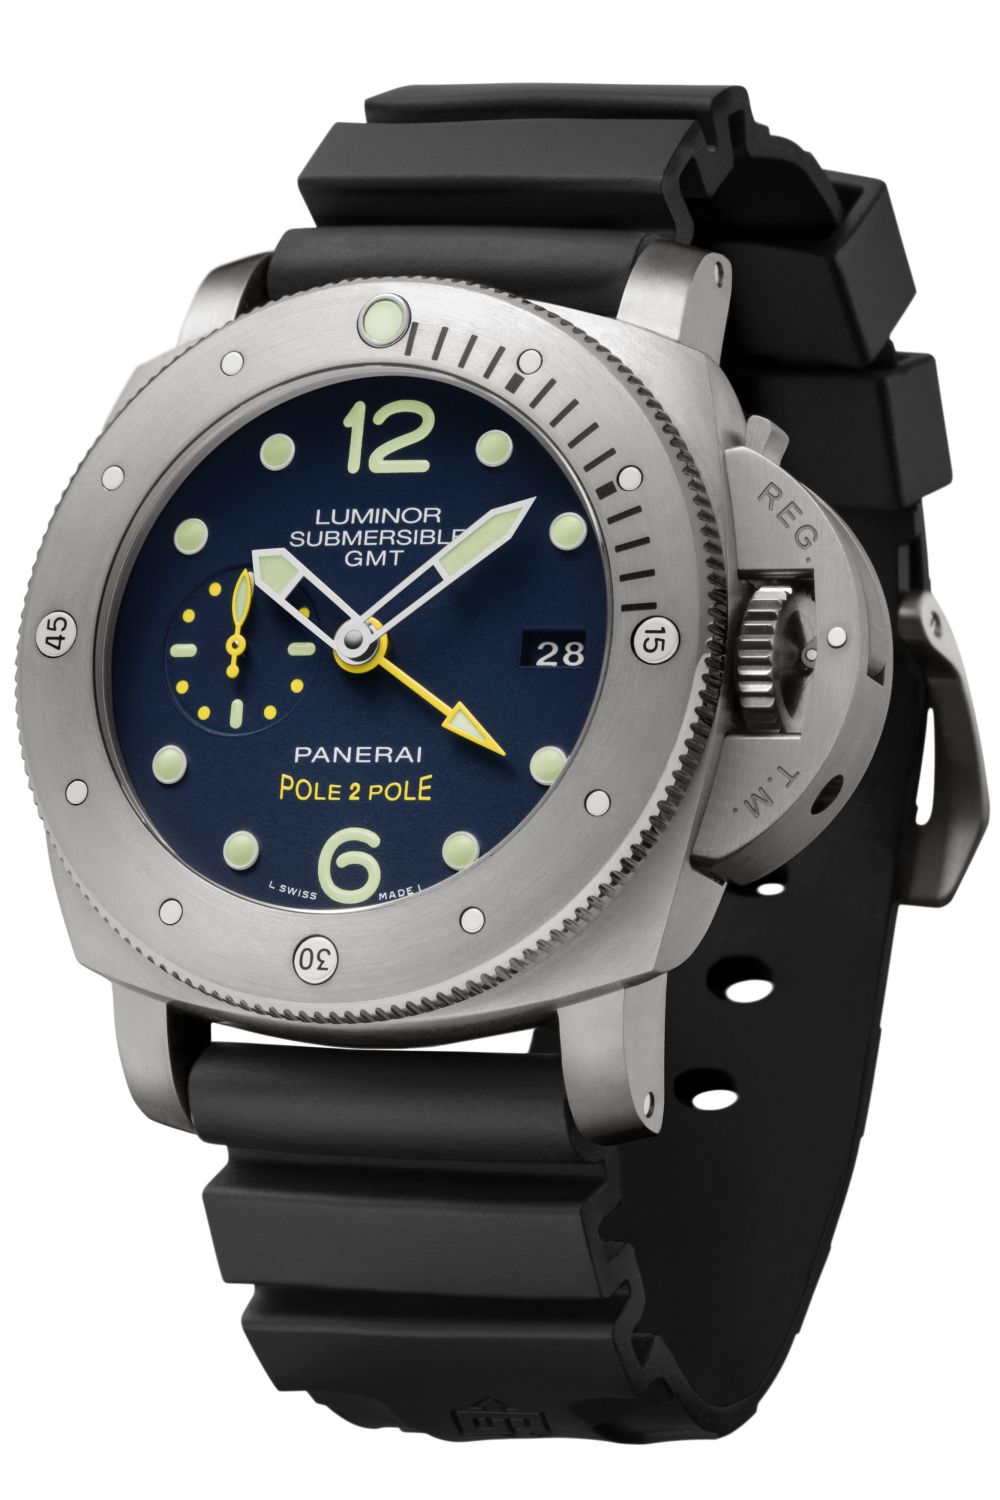 Panerai-Luminor-Submersible-Pam00719-Pole2Pole-1.jpg